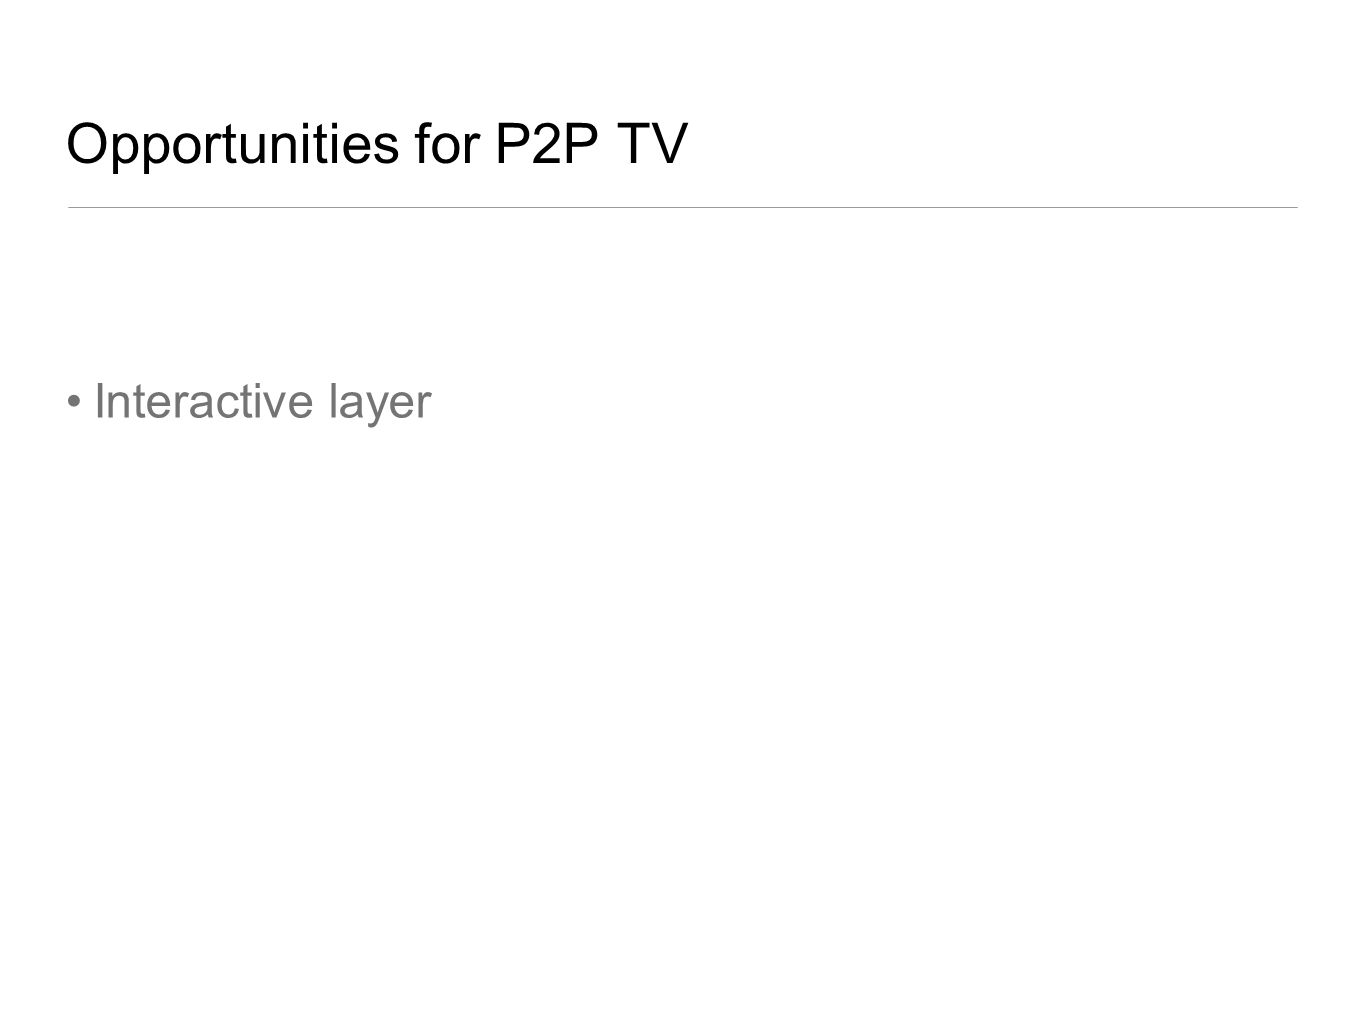 Opportunities for P2P TV Interactive layer